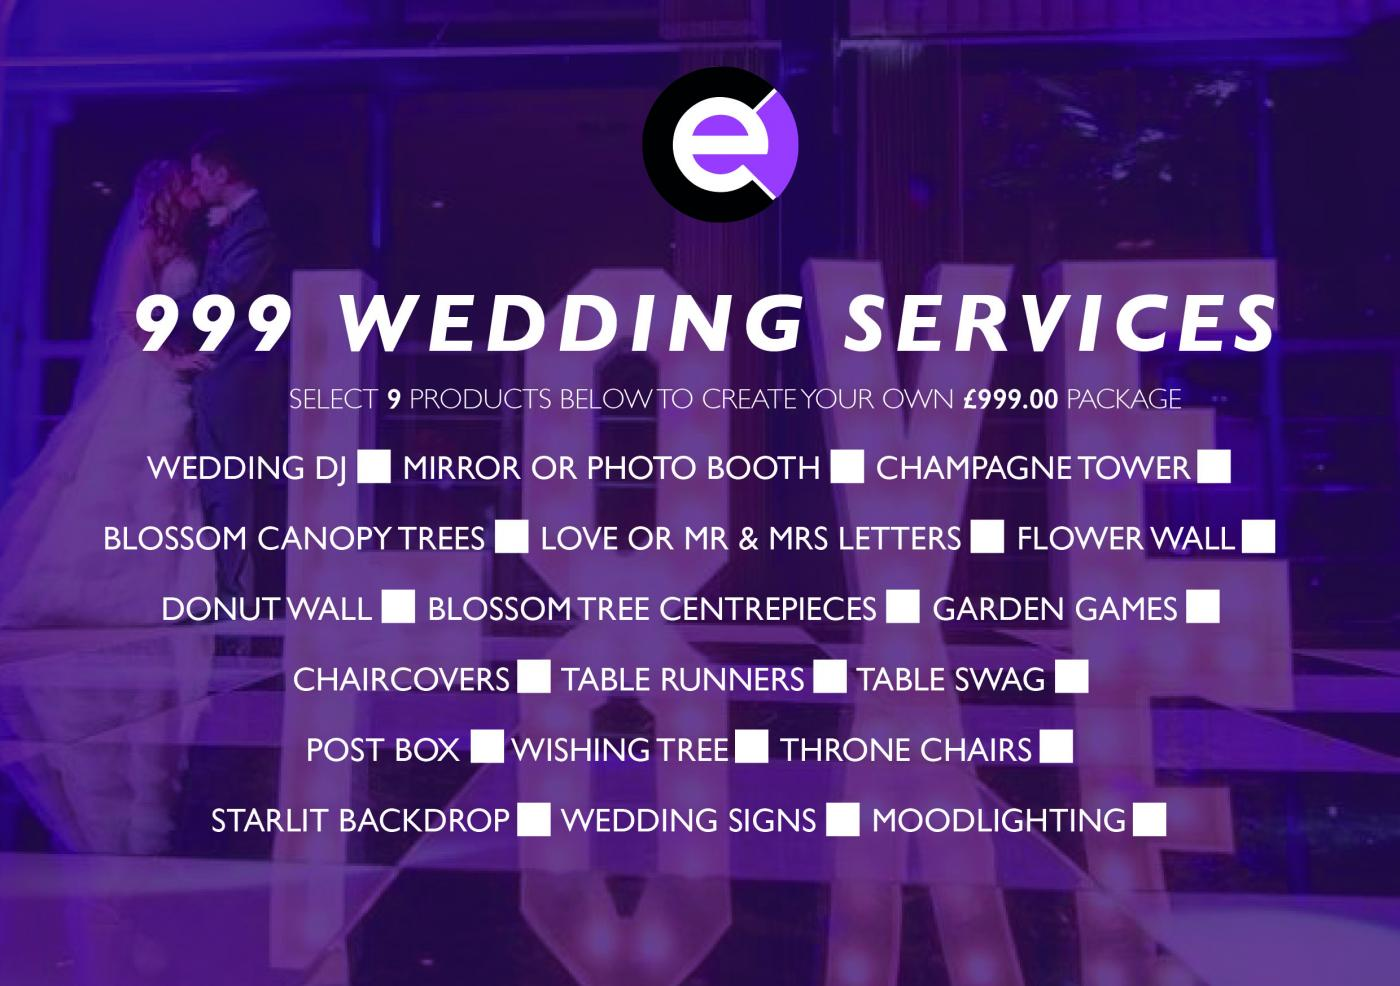 Connections wedding 999 services